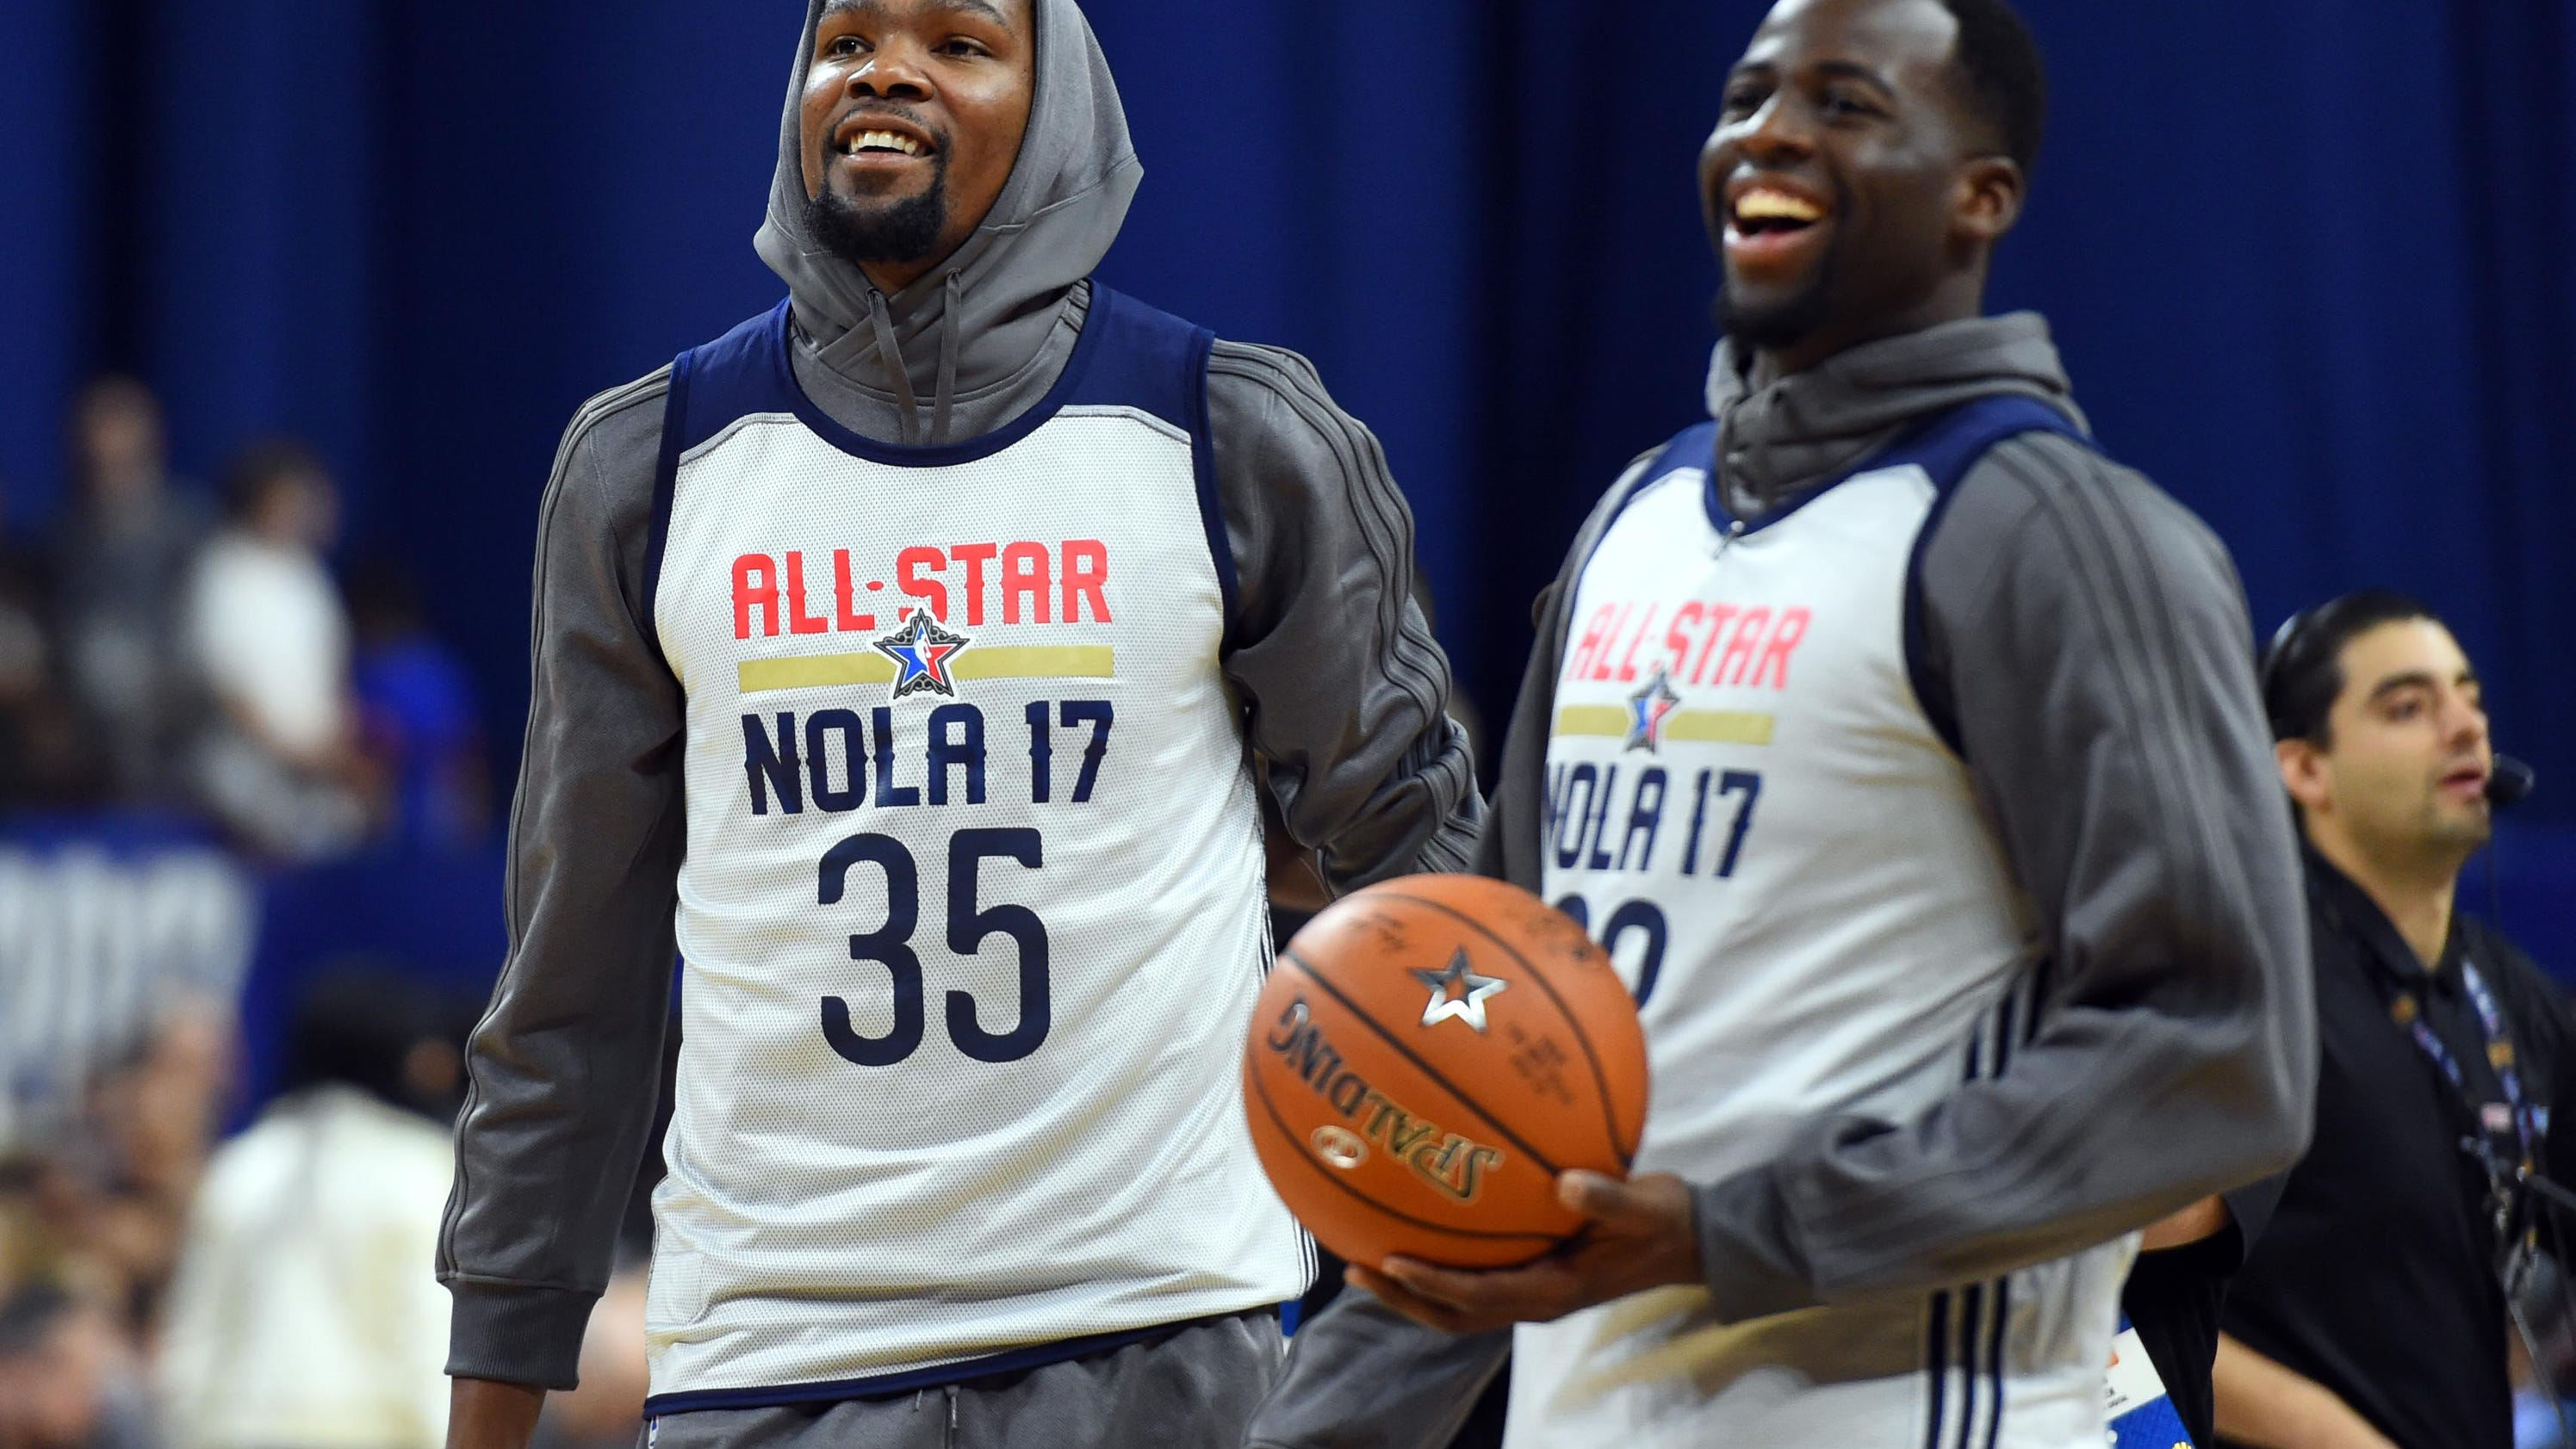 Usp_nba__all_star_practice_88886356